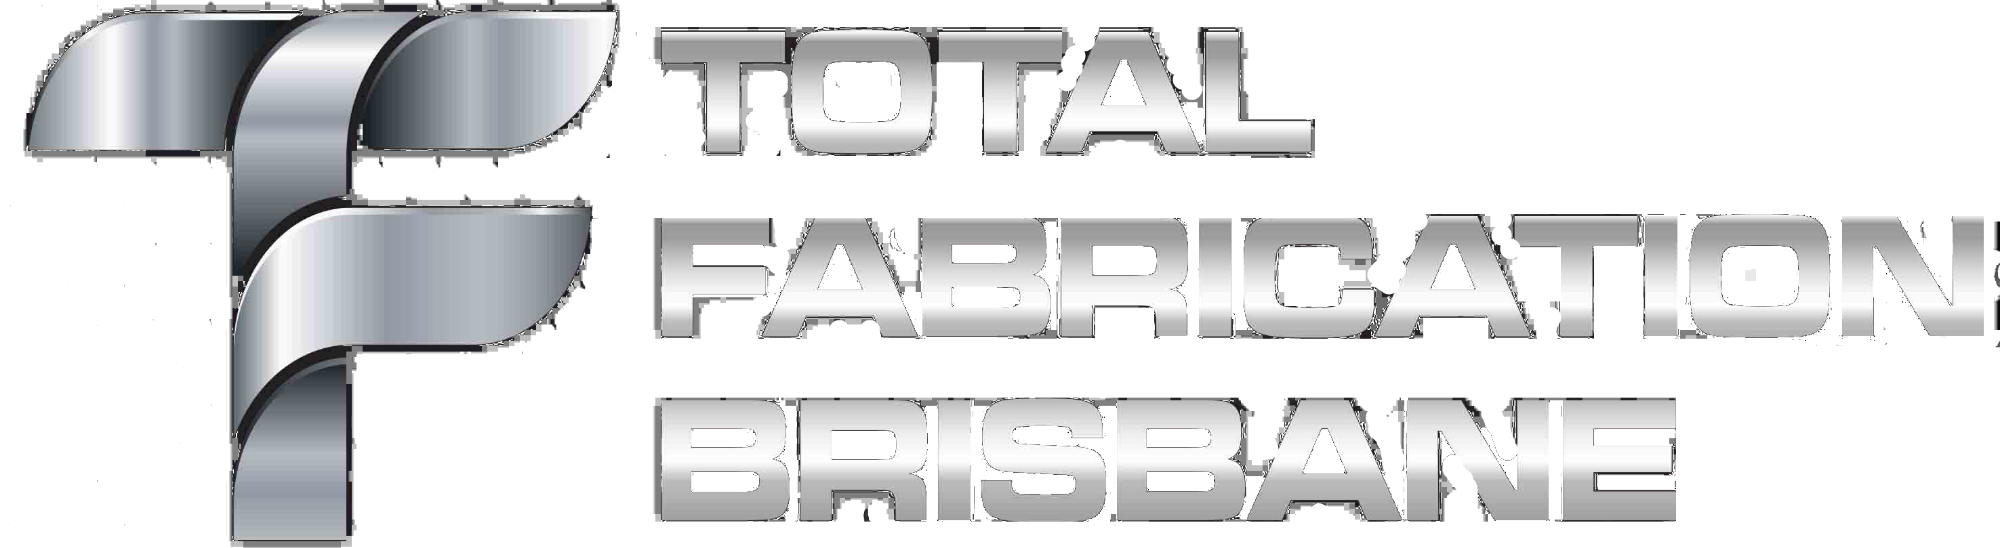 Total Fabrication Brisbane